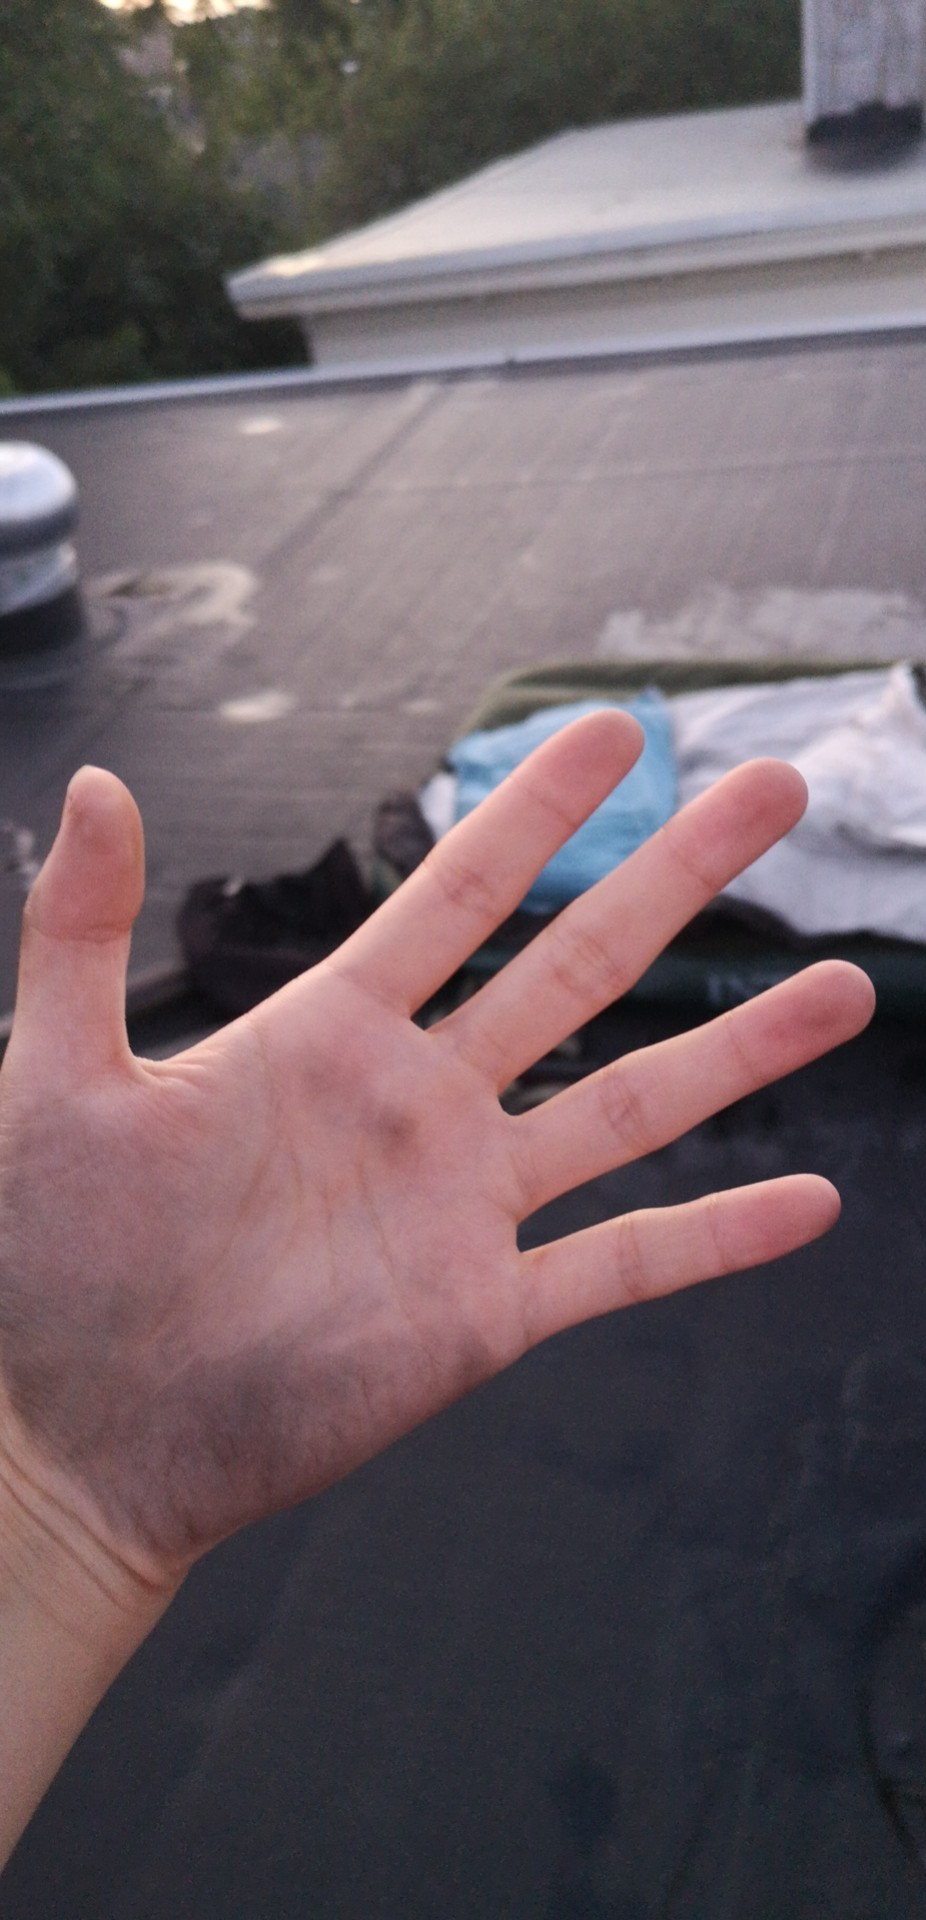 My hand was dirty from touching the rooftop, and I only realized it in the morning.